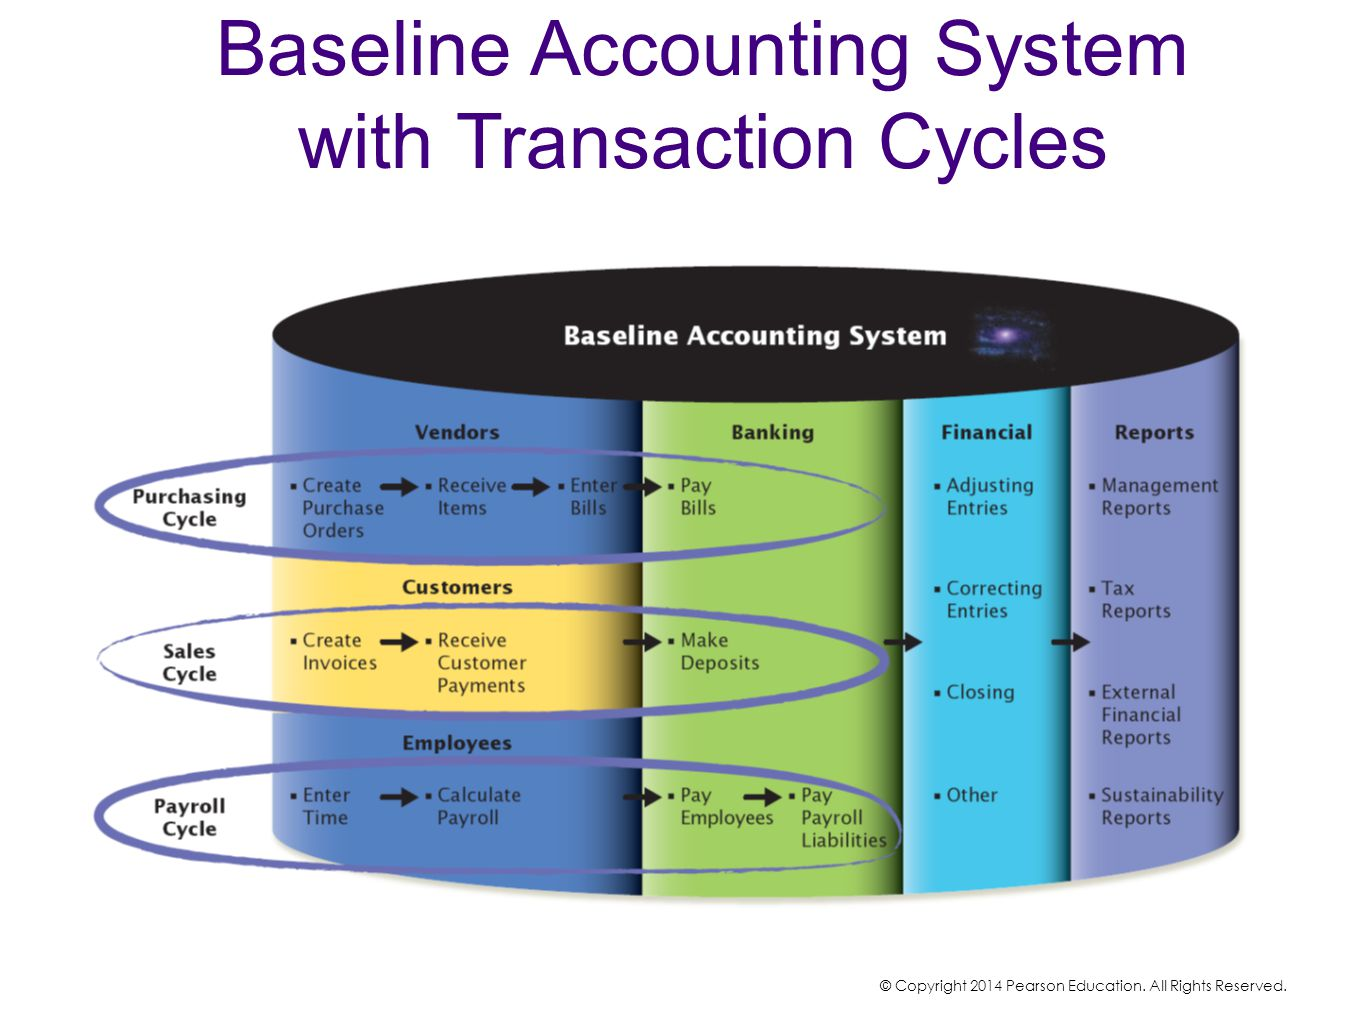 Baseline Accounting System with Transaction Cycles